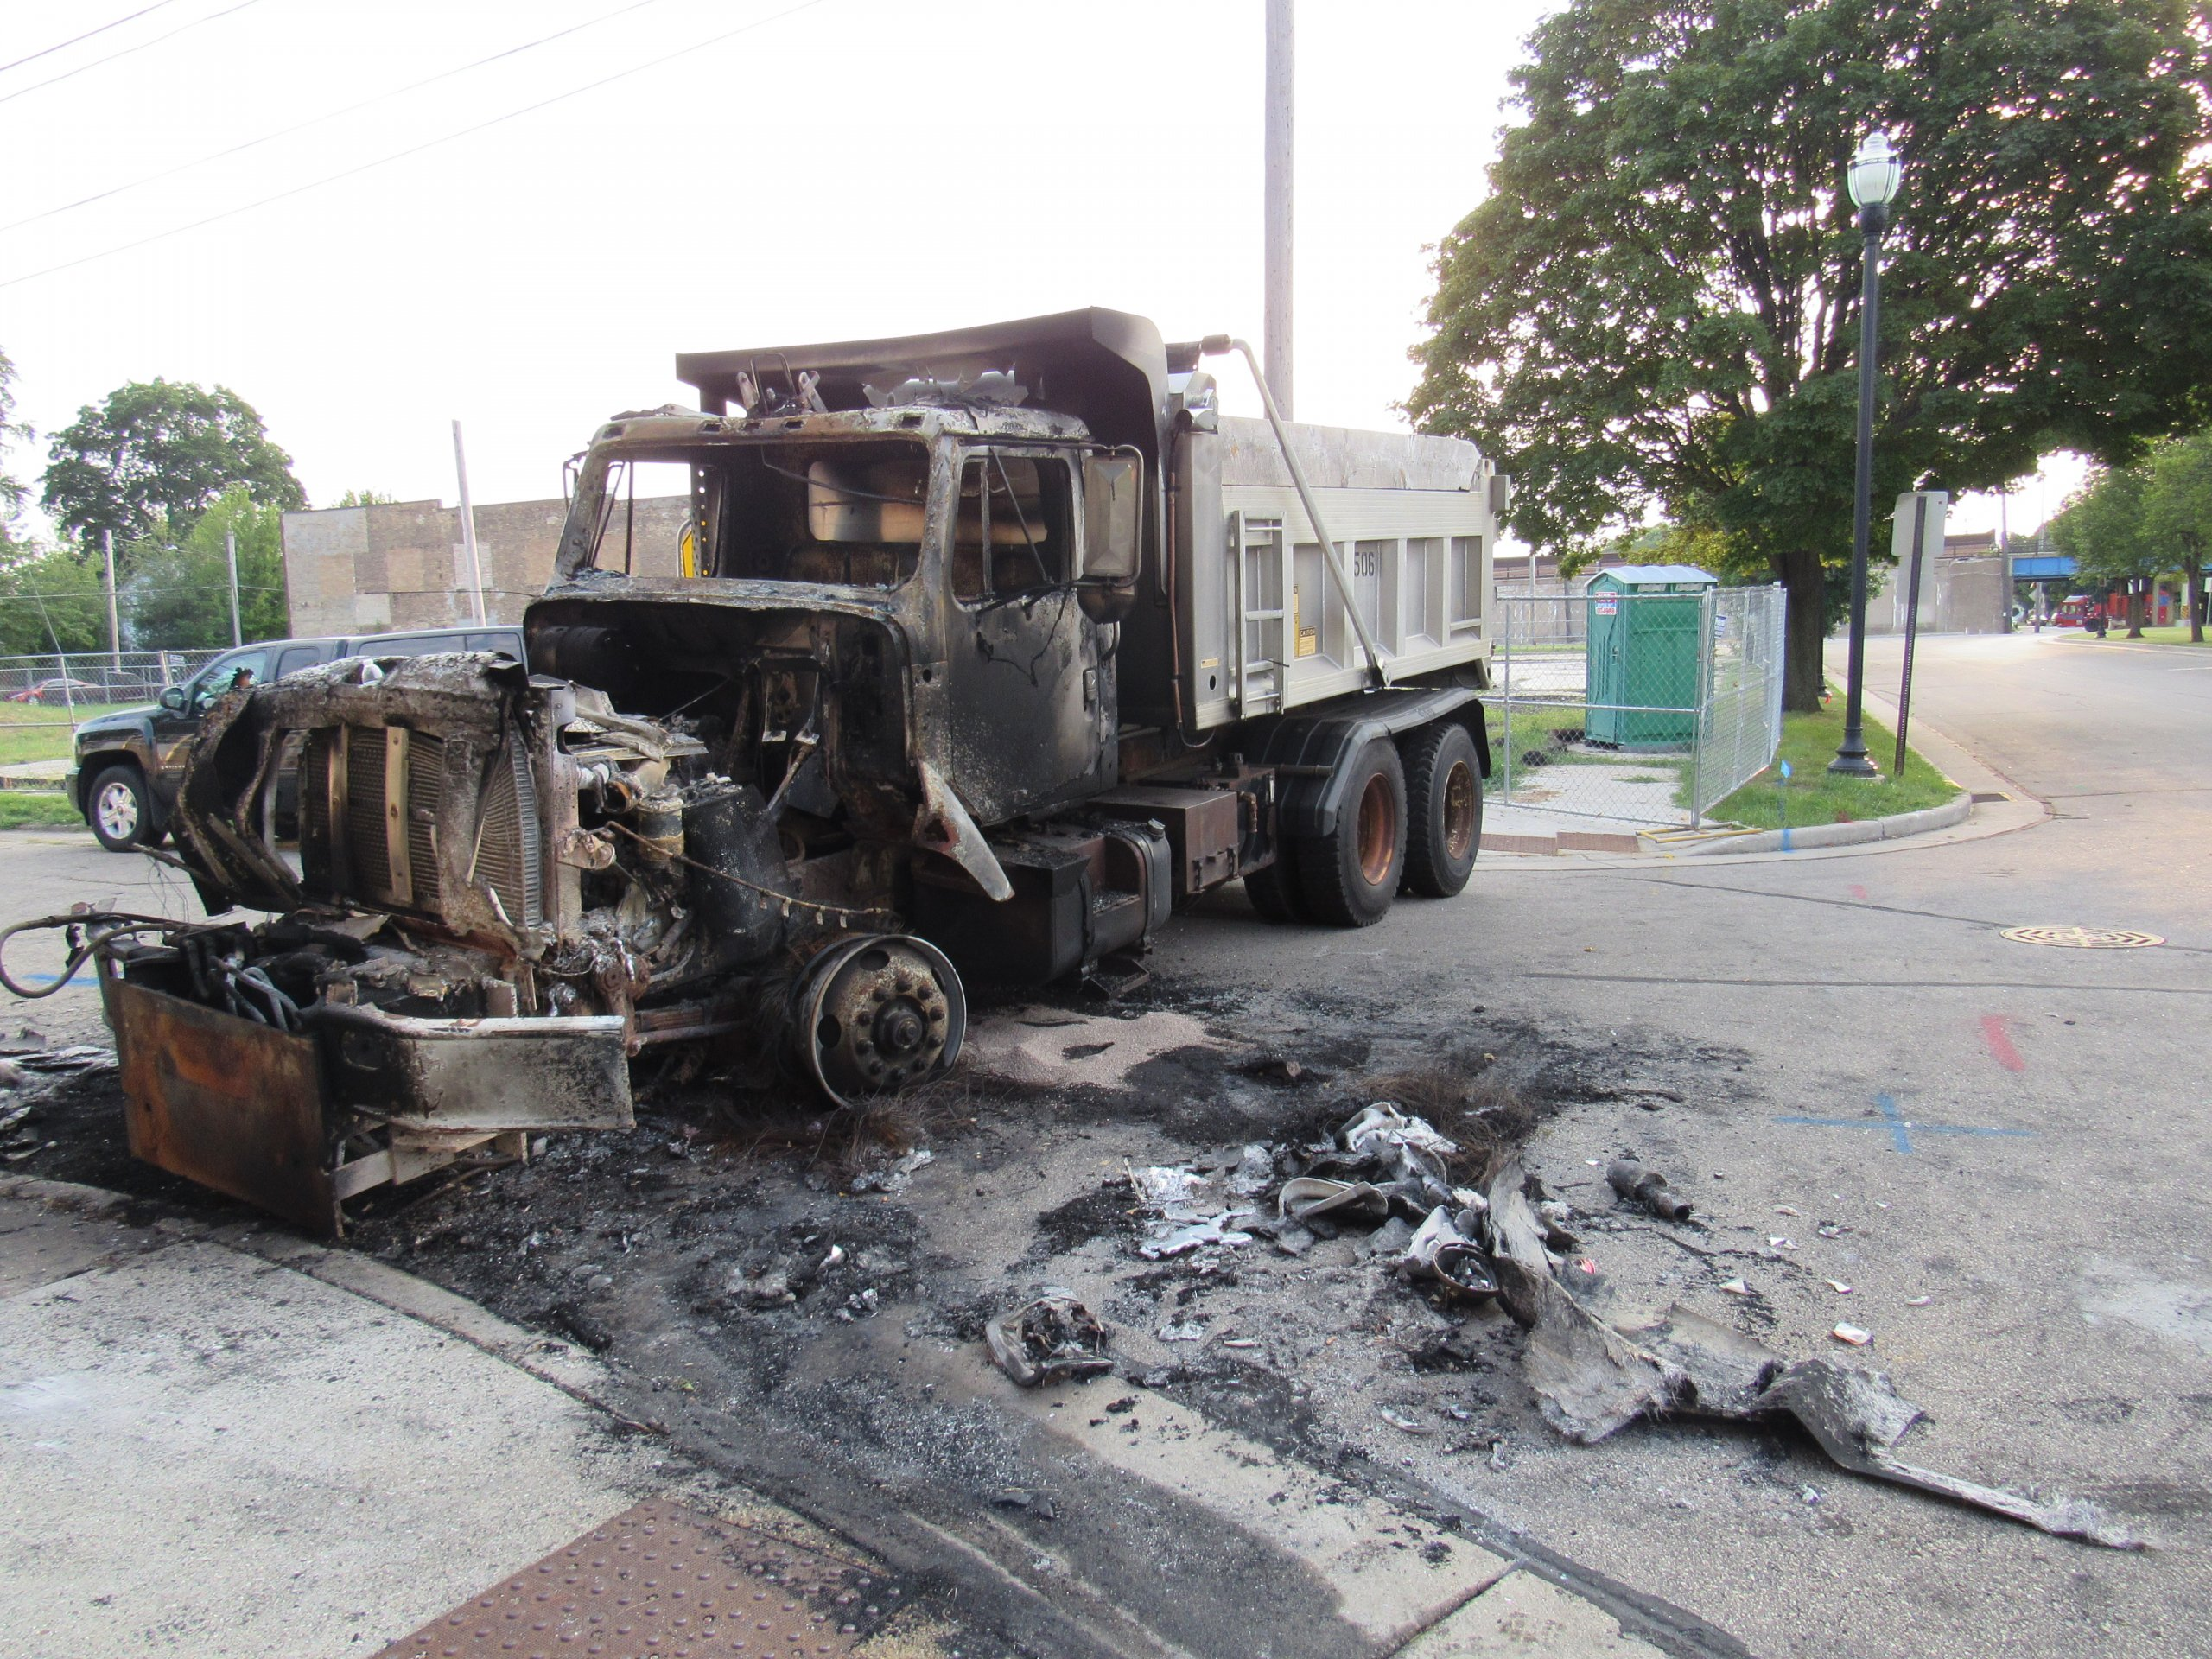 A burned out dump truck in Kenosha. (Photo by Isiah Holmes)